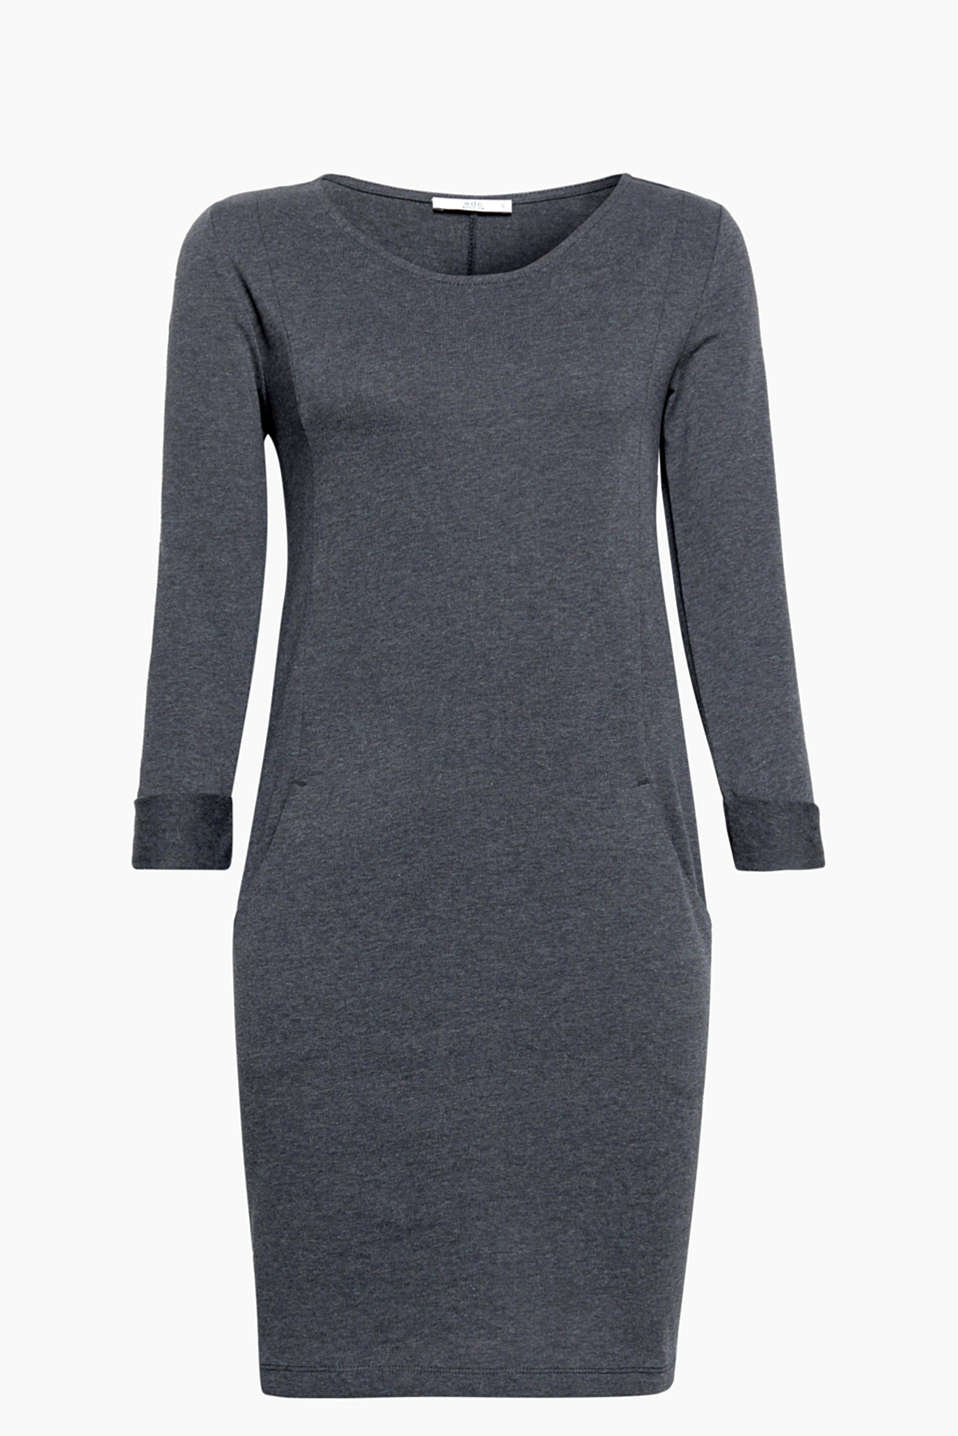 The casually caressing silhouette and soft sweat fabric transform this dress into a perfect, everyday fave!